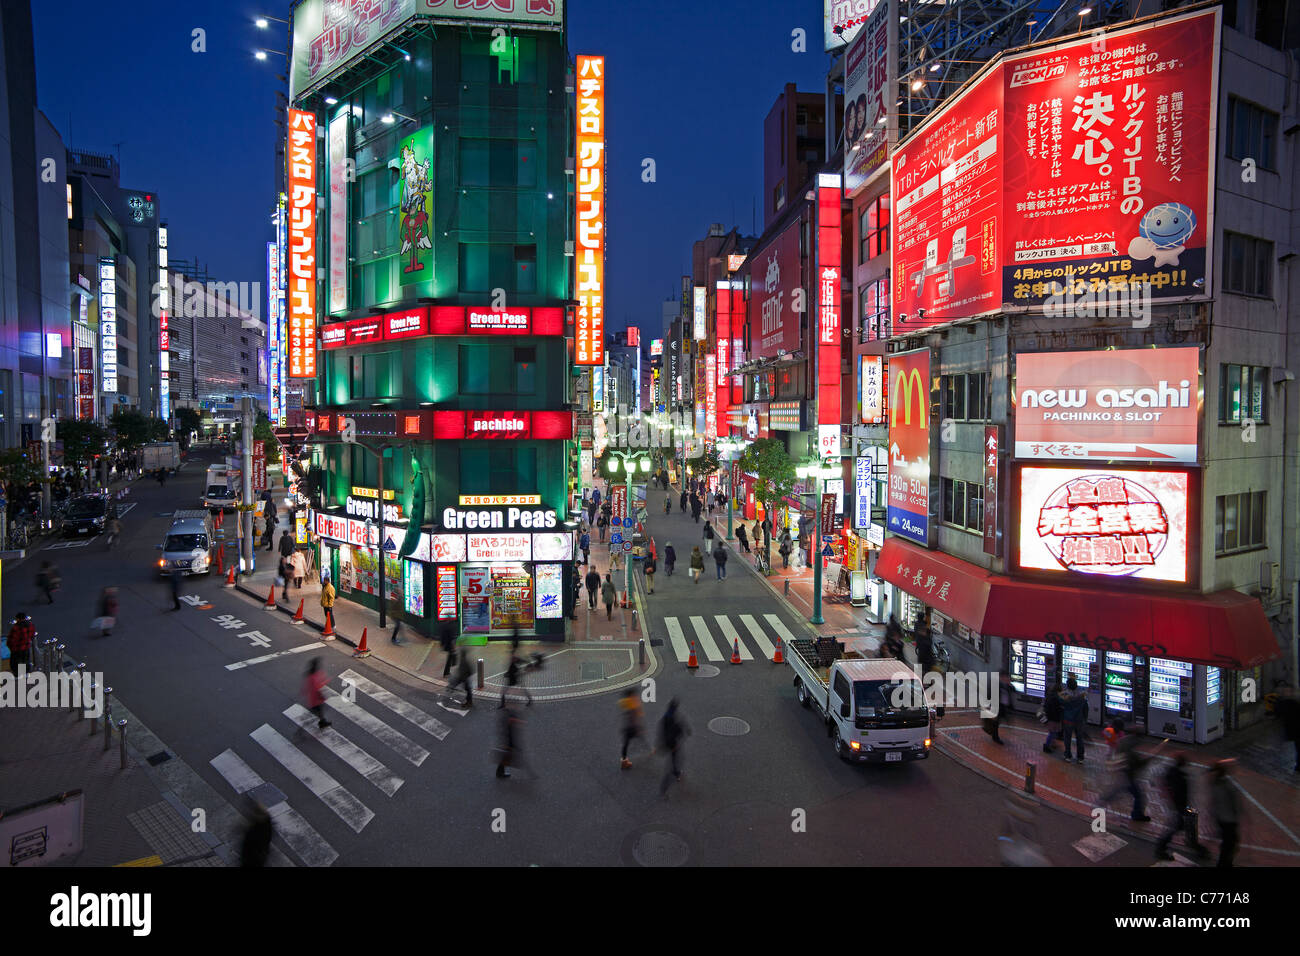 Asia, Japan, Tokyo, Shinjuku, neon lights of Shinjuku district at night - Stock Image